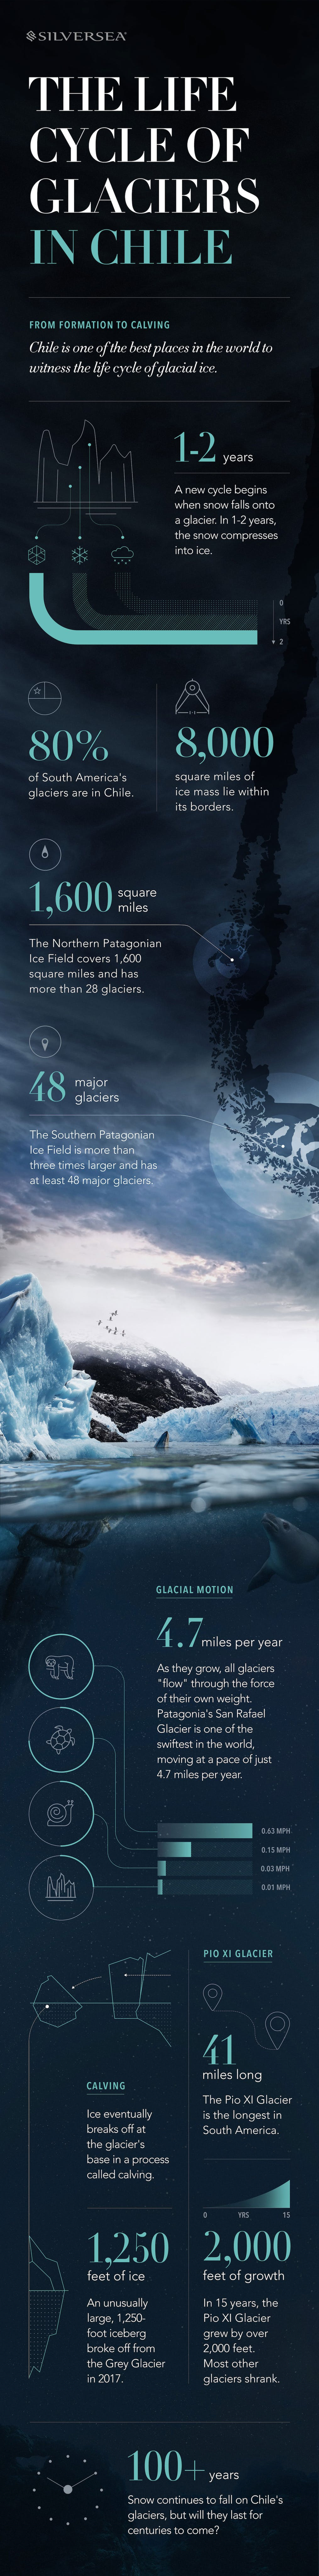 Learn about the stages of a glacier with this infographic.